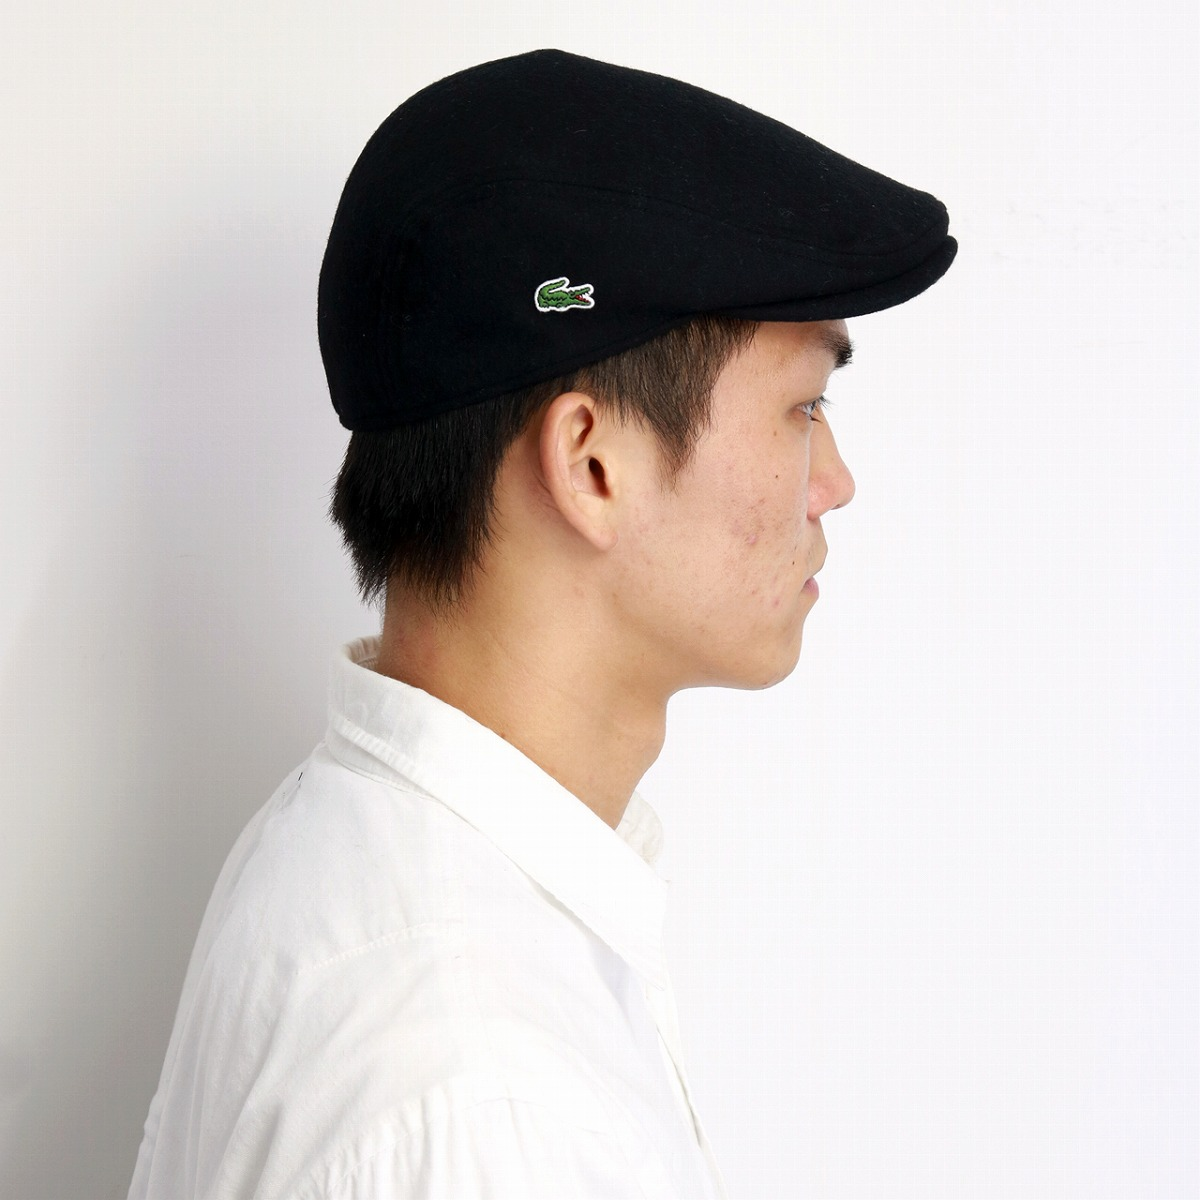 c6919b0108f67 Crocodile brand casual clothes black black  ivy cap  gift present made in hunting  cap men lacoste hat Shin pull plain fabric Lacoste hunting cap hat ...